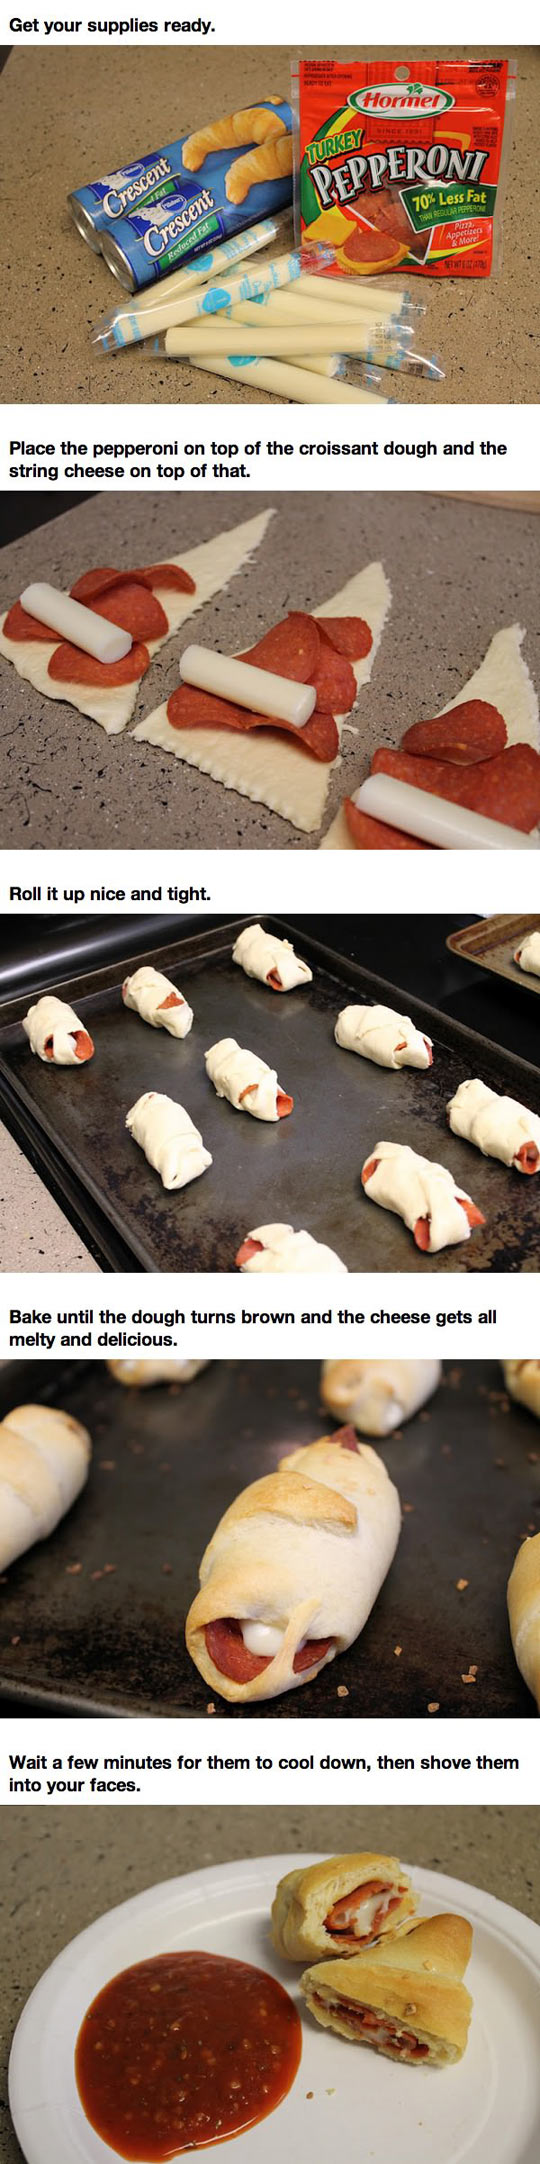 funny-pepperoni-pizza-rolls-croissant